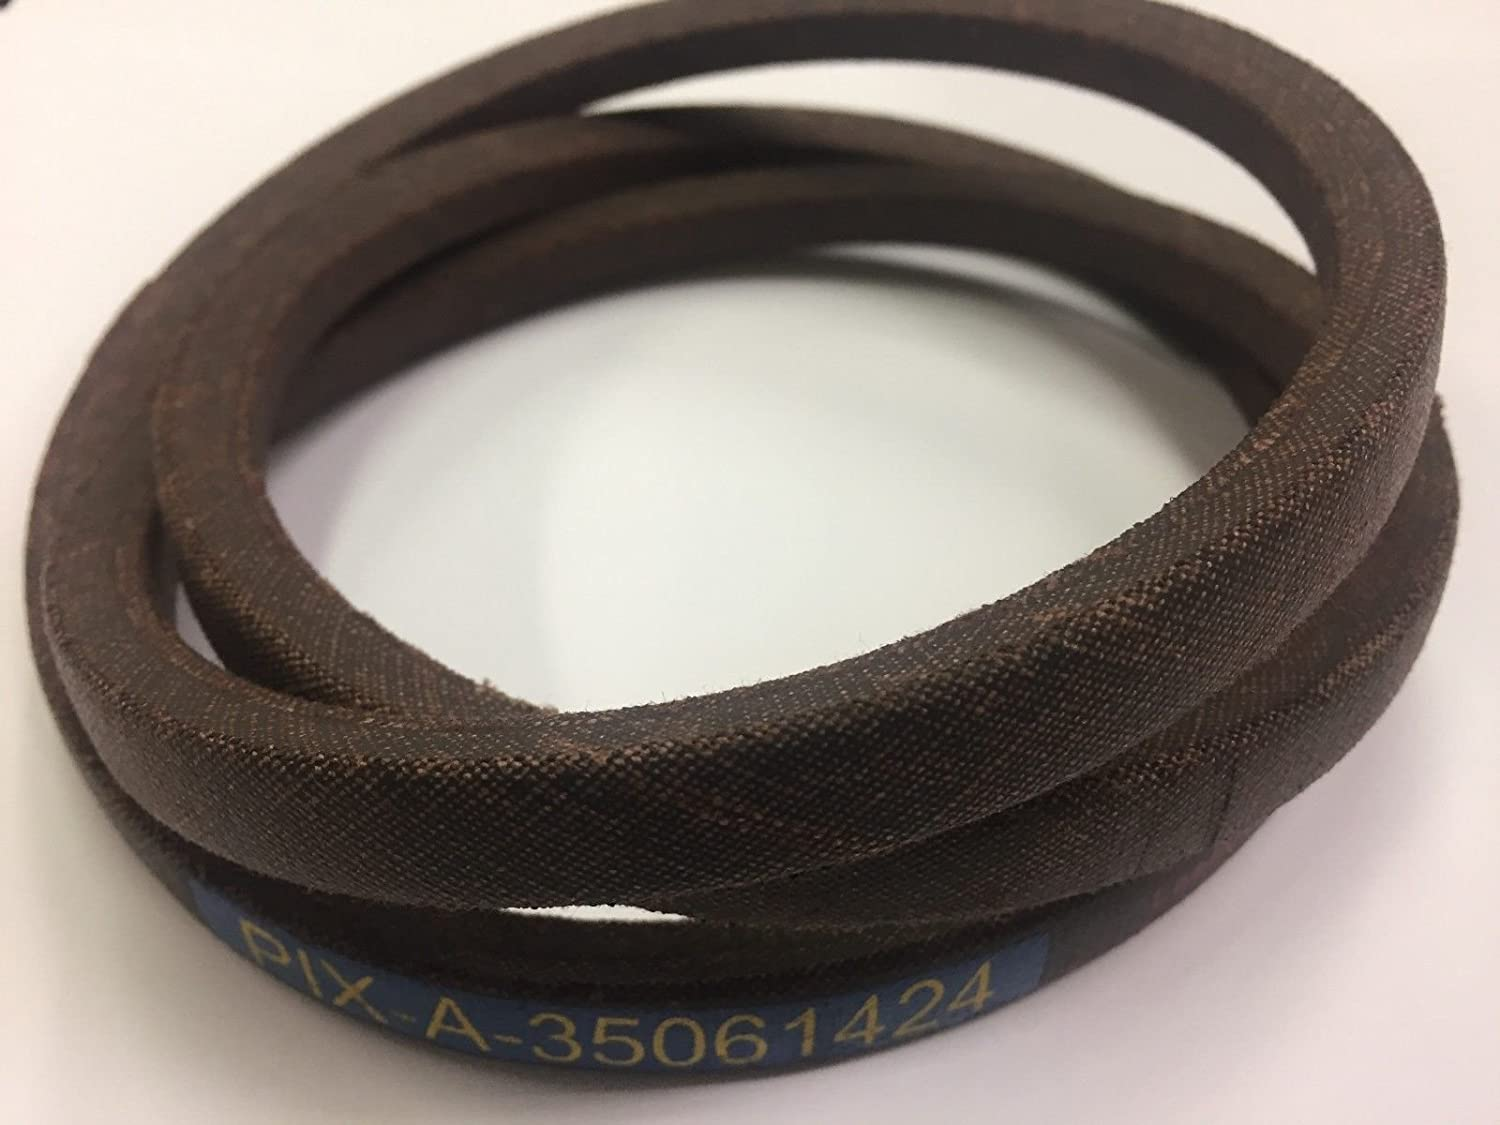 Castelgarden F72, F72HYDRO Ride on Lawnmower Deck Drive Belt fits many models Part no. 35061423 & 135061423/0 GGP